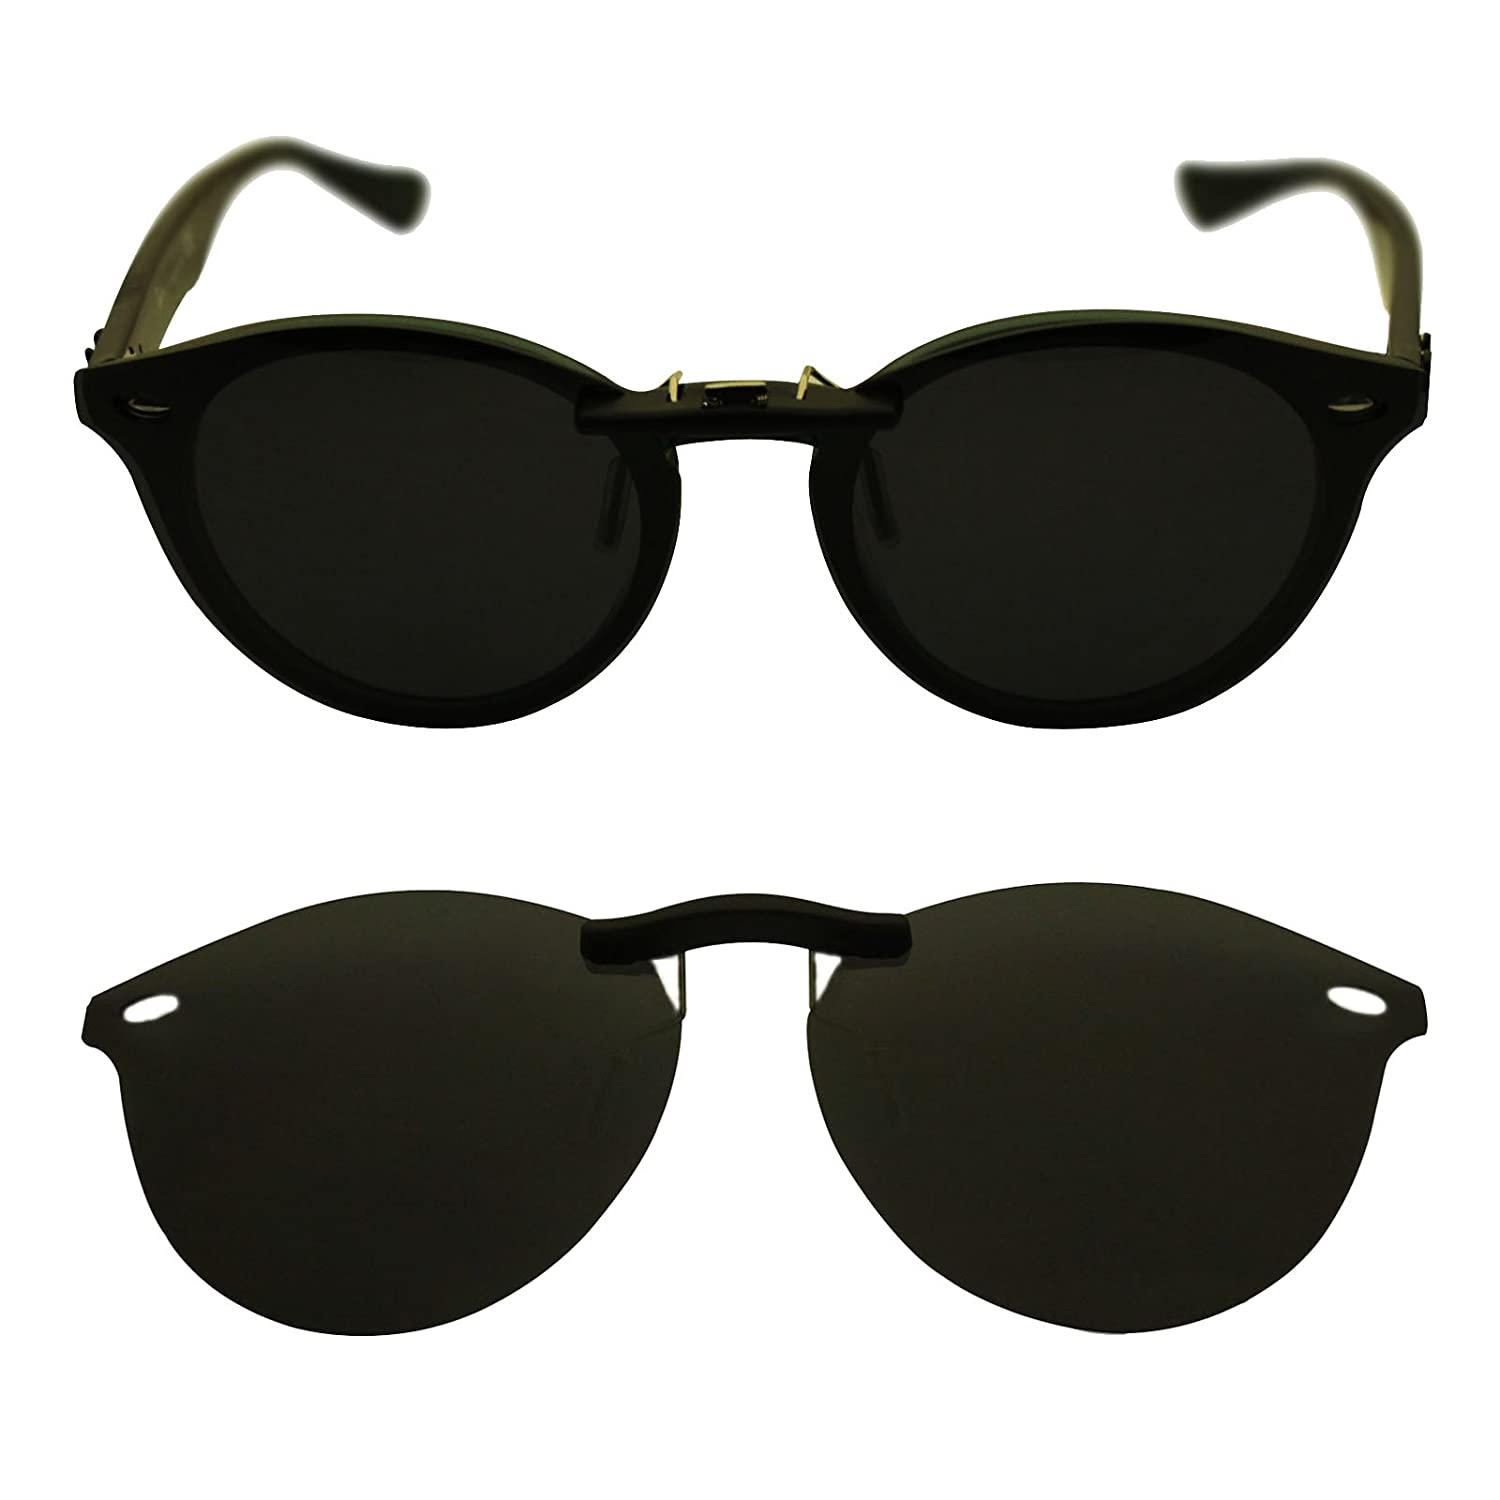 4e776a621fc Ray Ban Clubmaster 3016 51 X 21 Clip On Sunglasses kuvat - Kritische ...